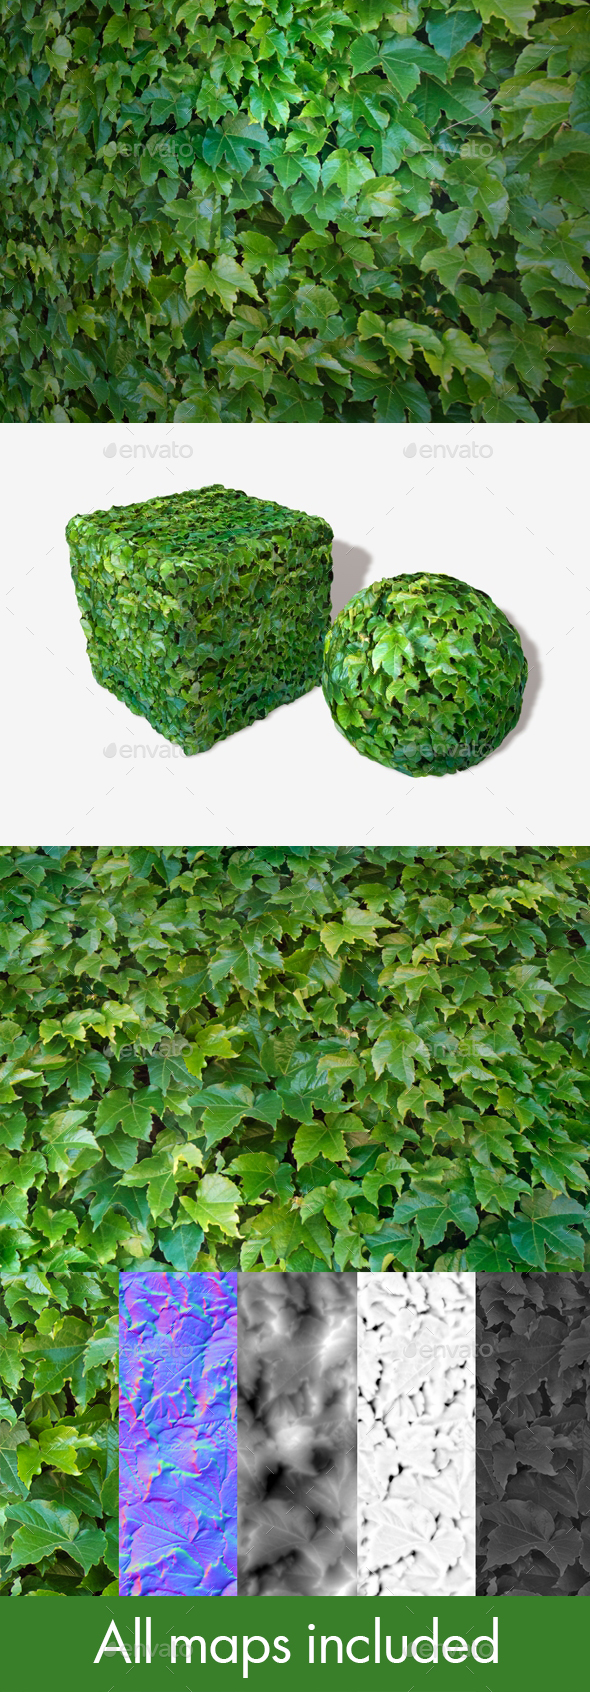 3DOcean Shiny Green Leaves Seamless Texture 20662816